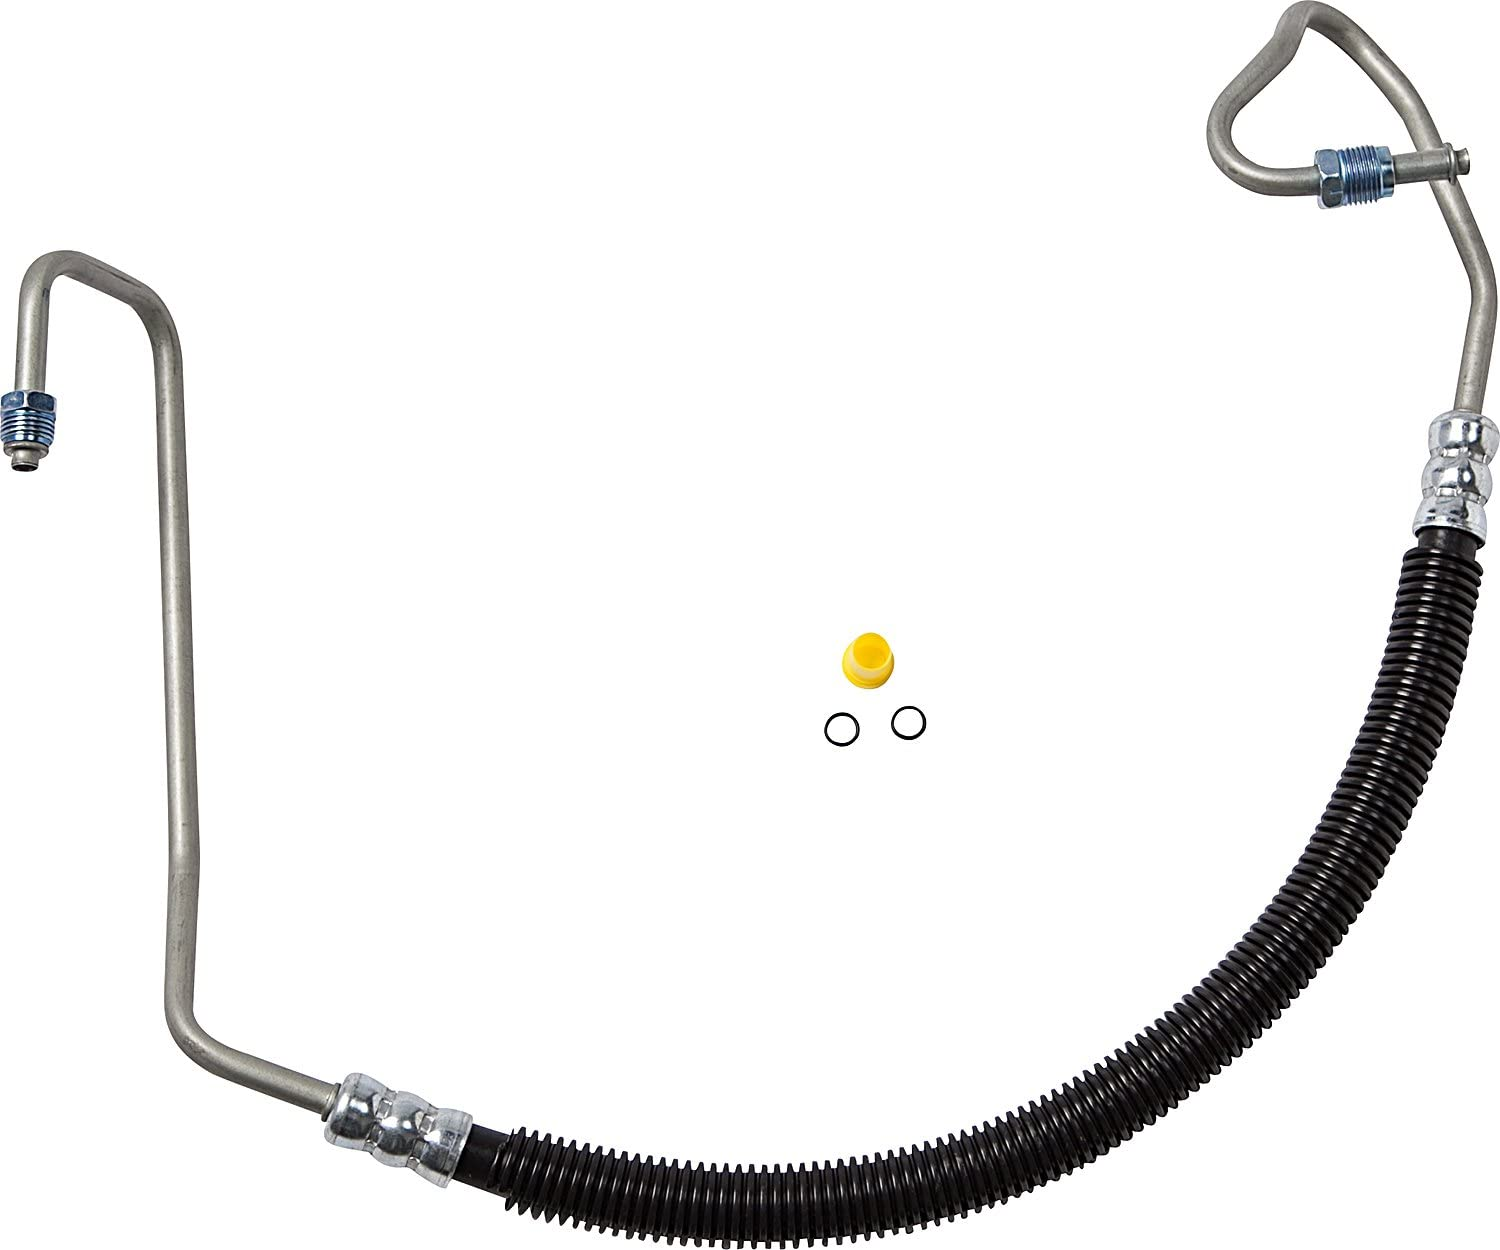 ACDelco 36-365425 Professional Power Steering Pressure Line Hose Assembly